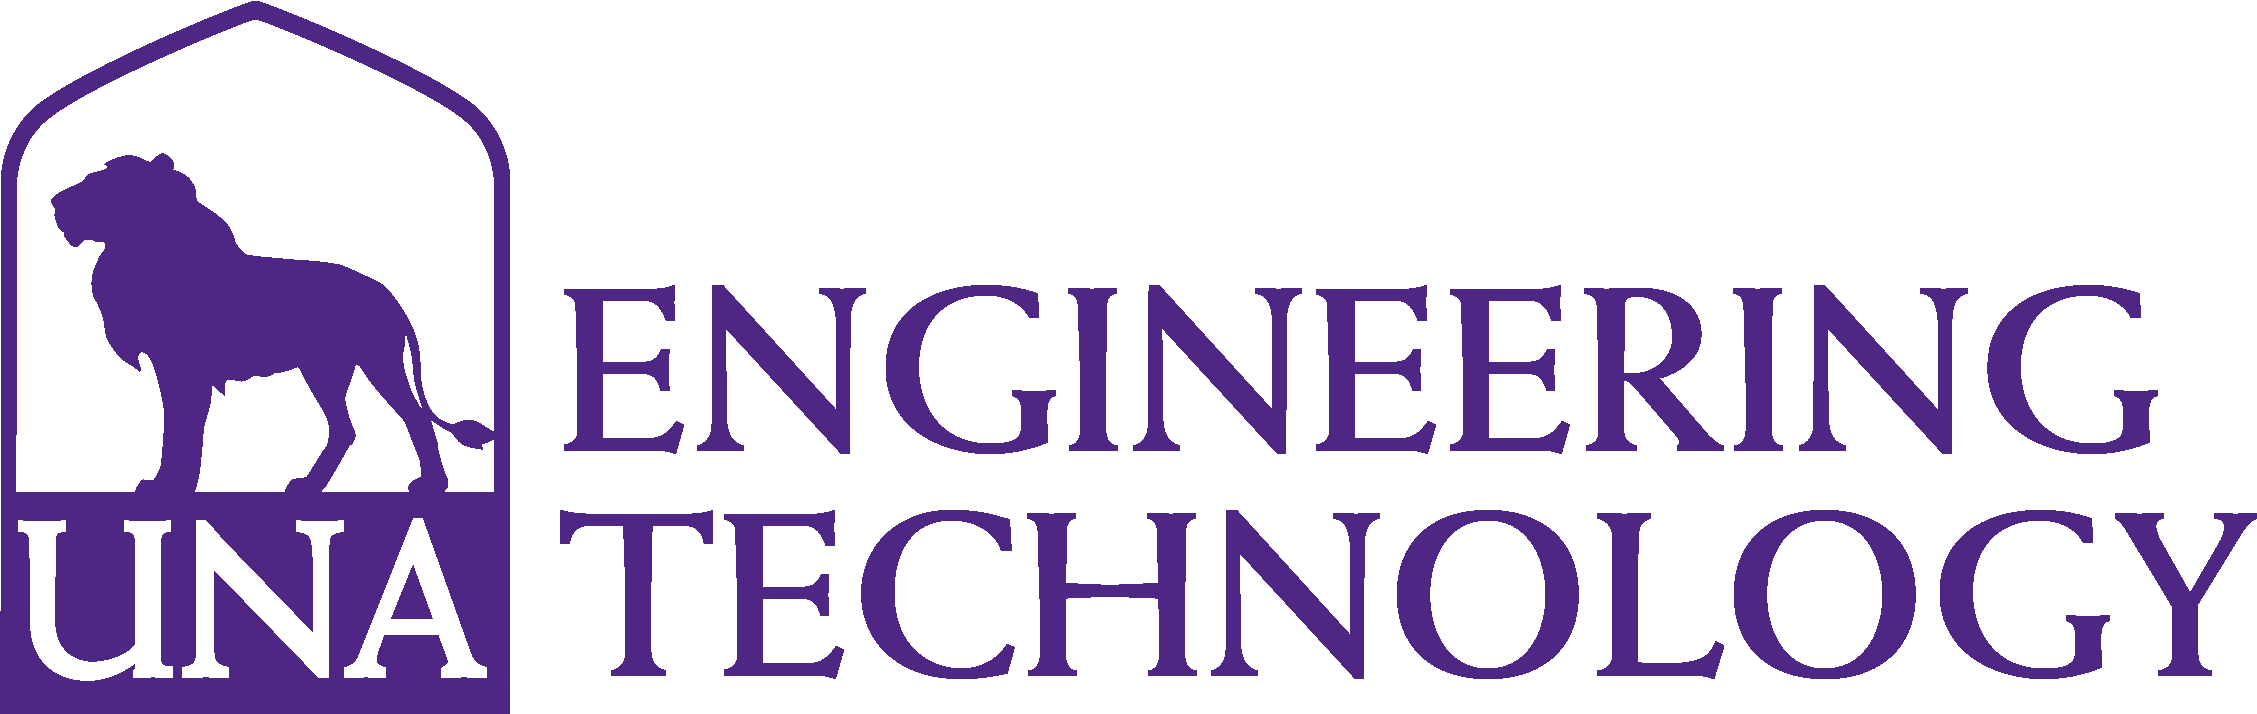 College of Arts and Sciences - Engineering Logo - Purple - Version 3